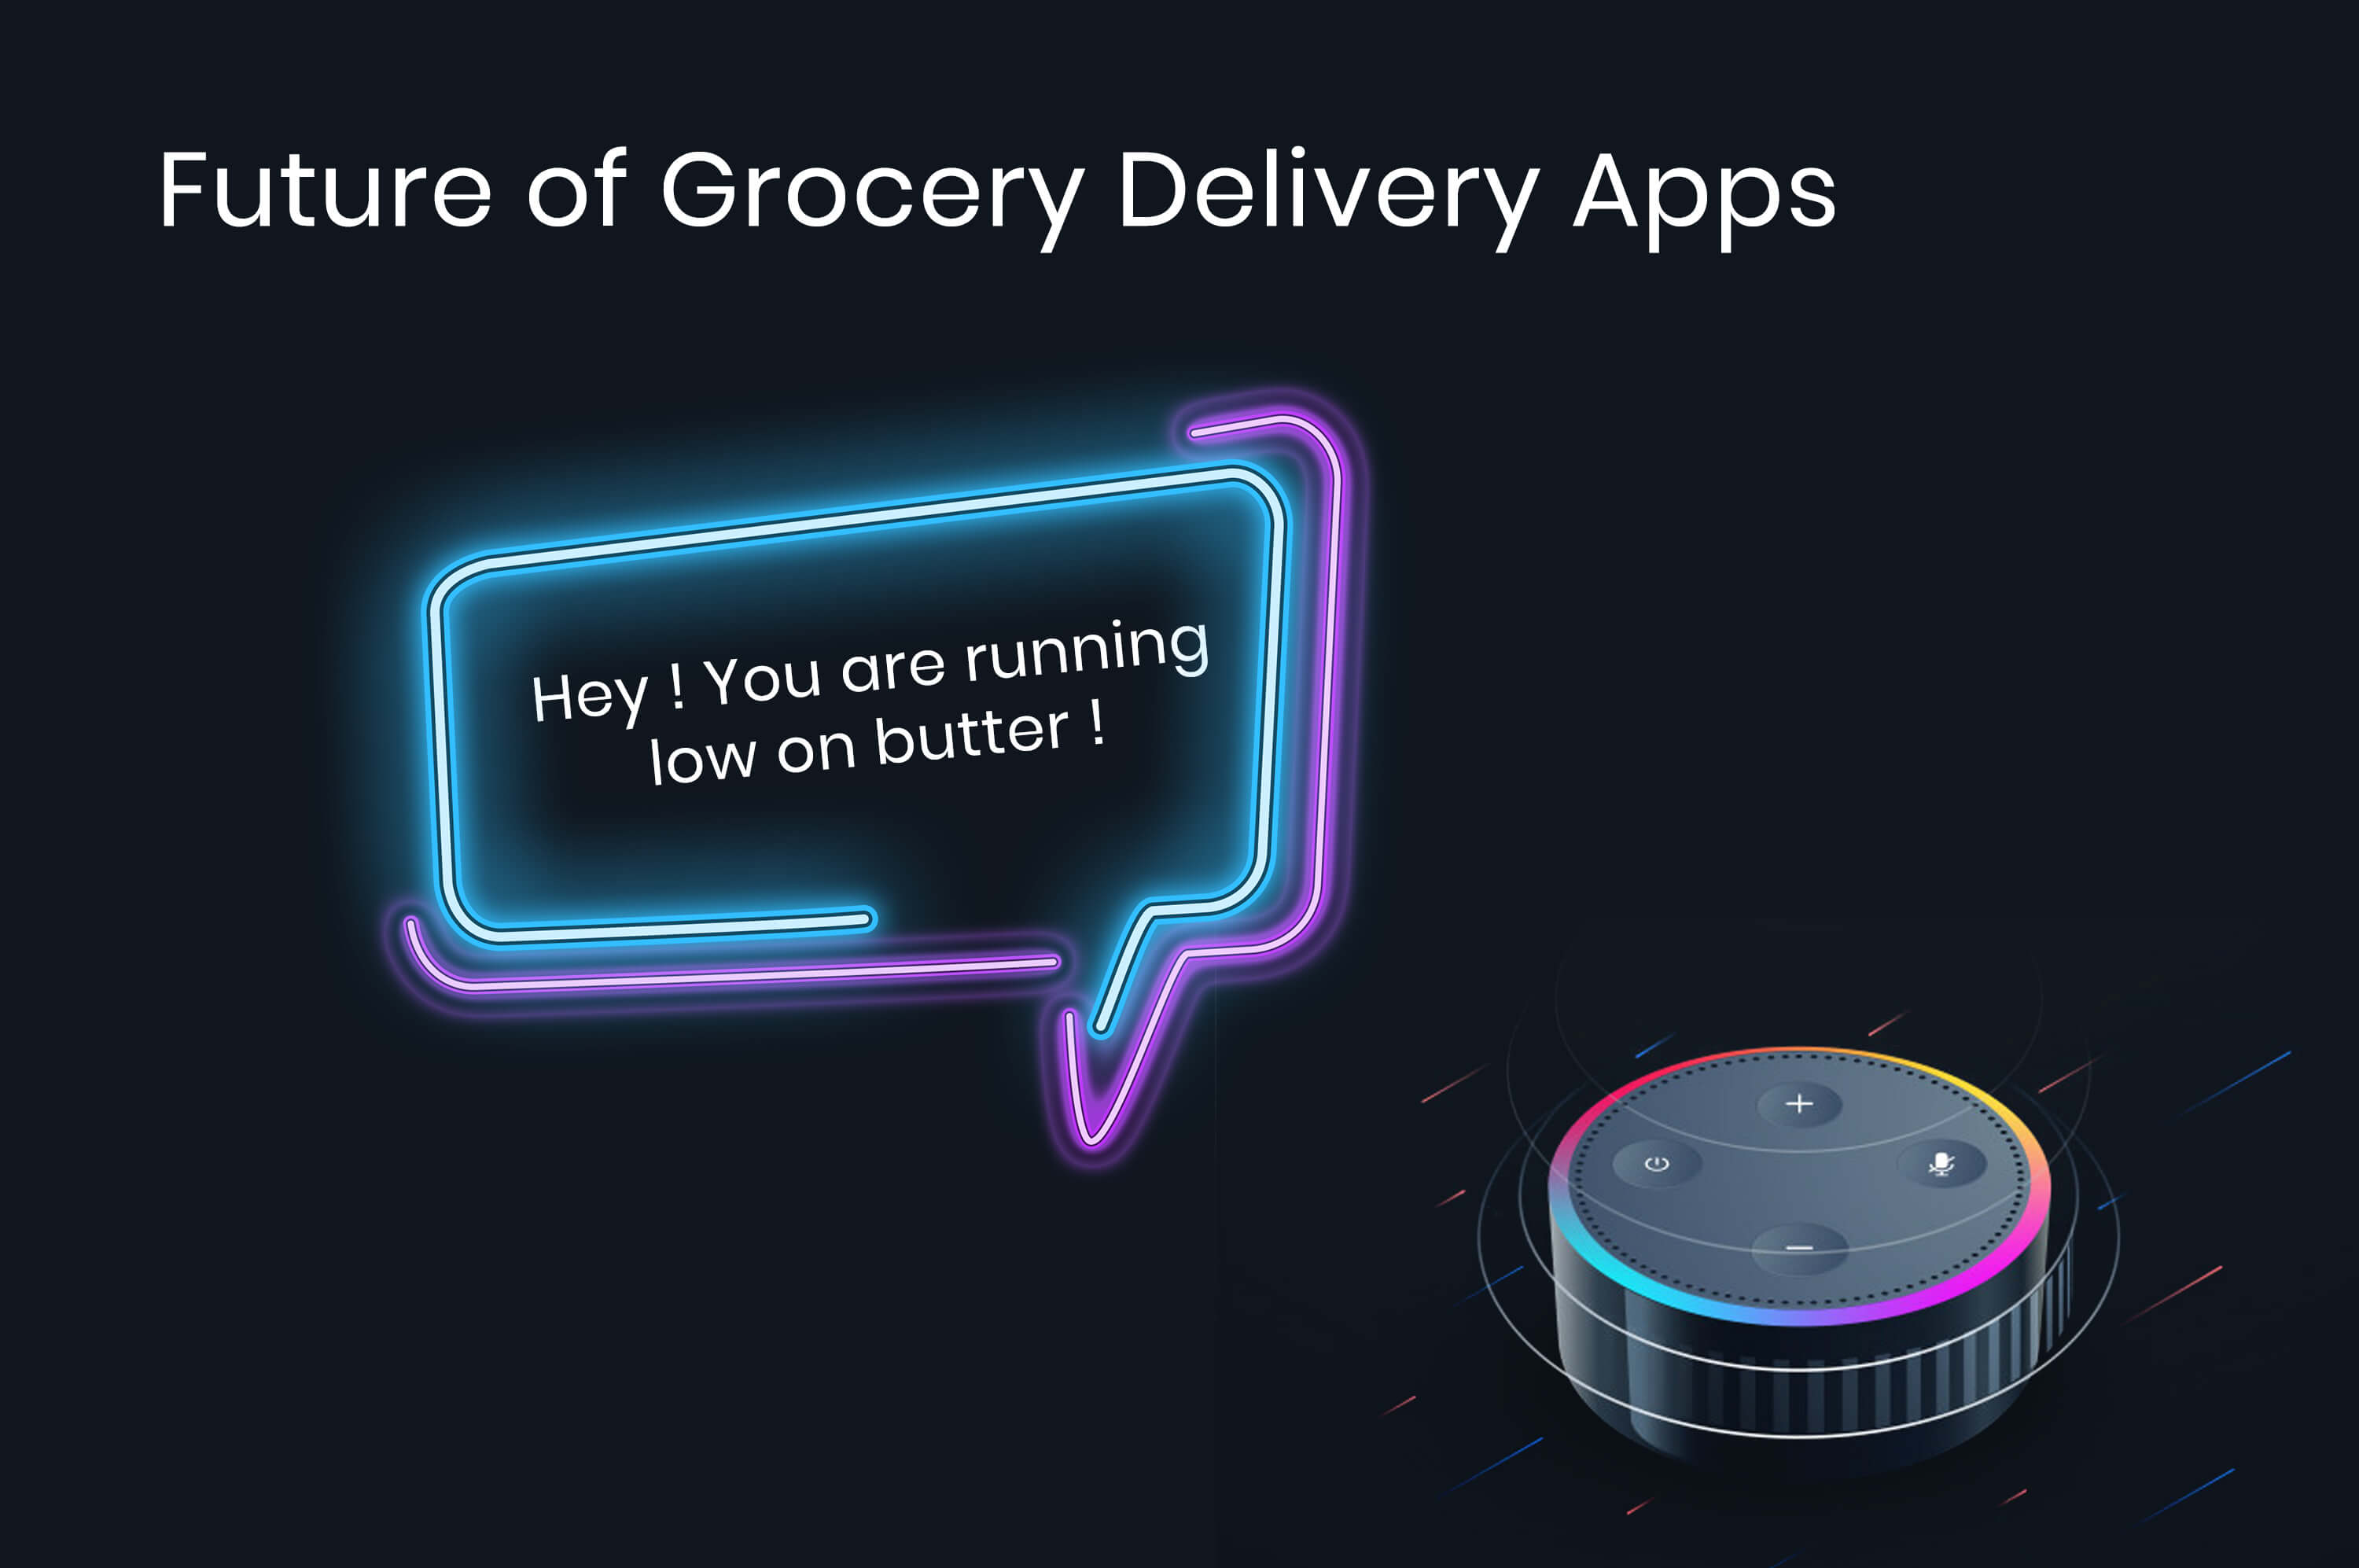 amazon alexa replying that butter is out of stock at home